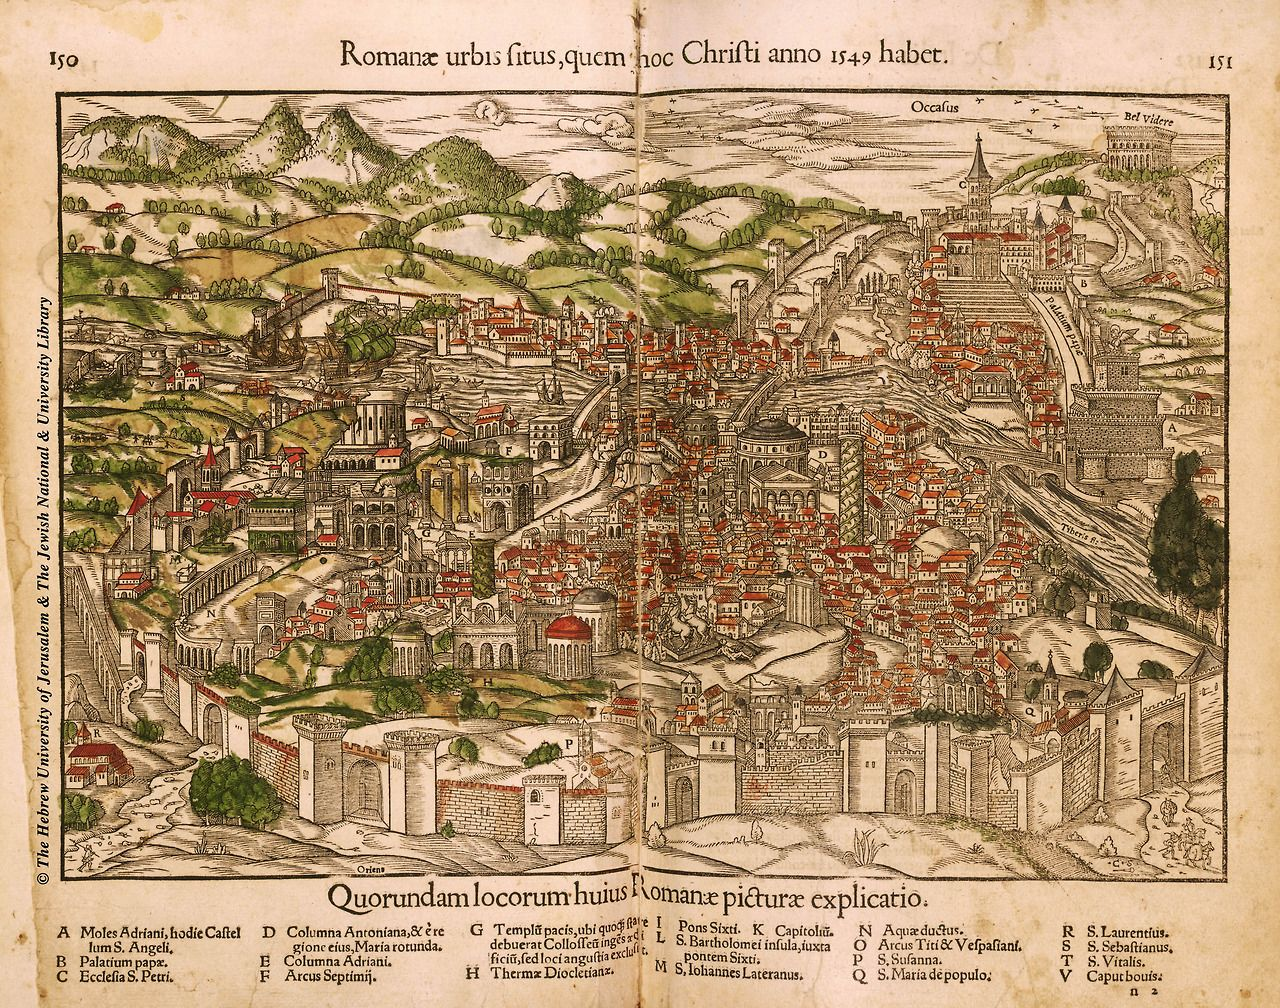 Romanae urbis situs,quem hoc Christianno 1549 habet  The Renaissance map of Rome by Sebastian Munster from Cosmographia1550 (Latin edition)  Munster's bio high-res map